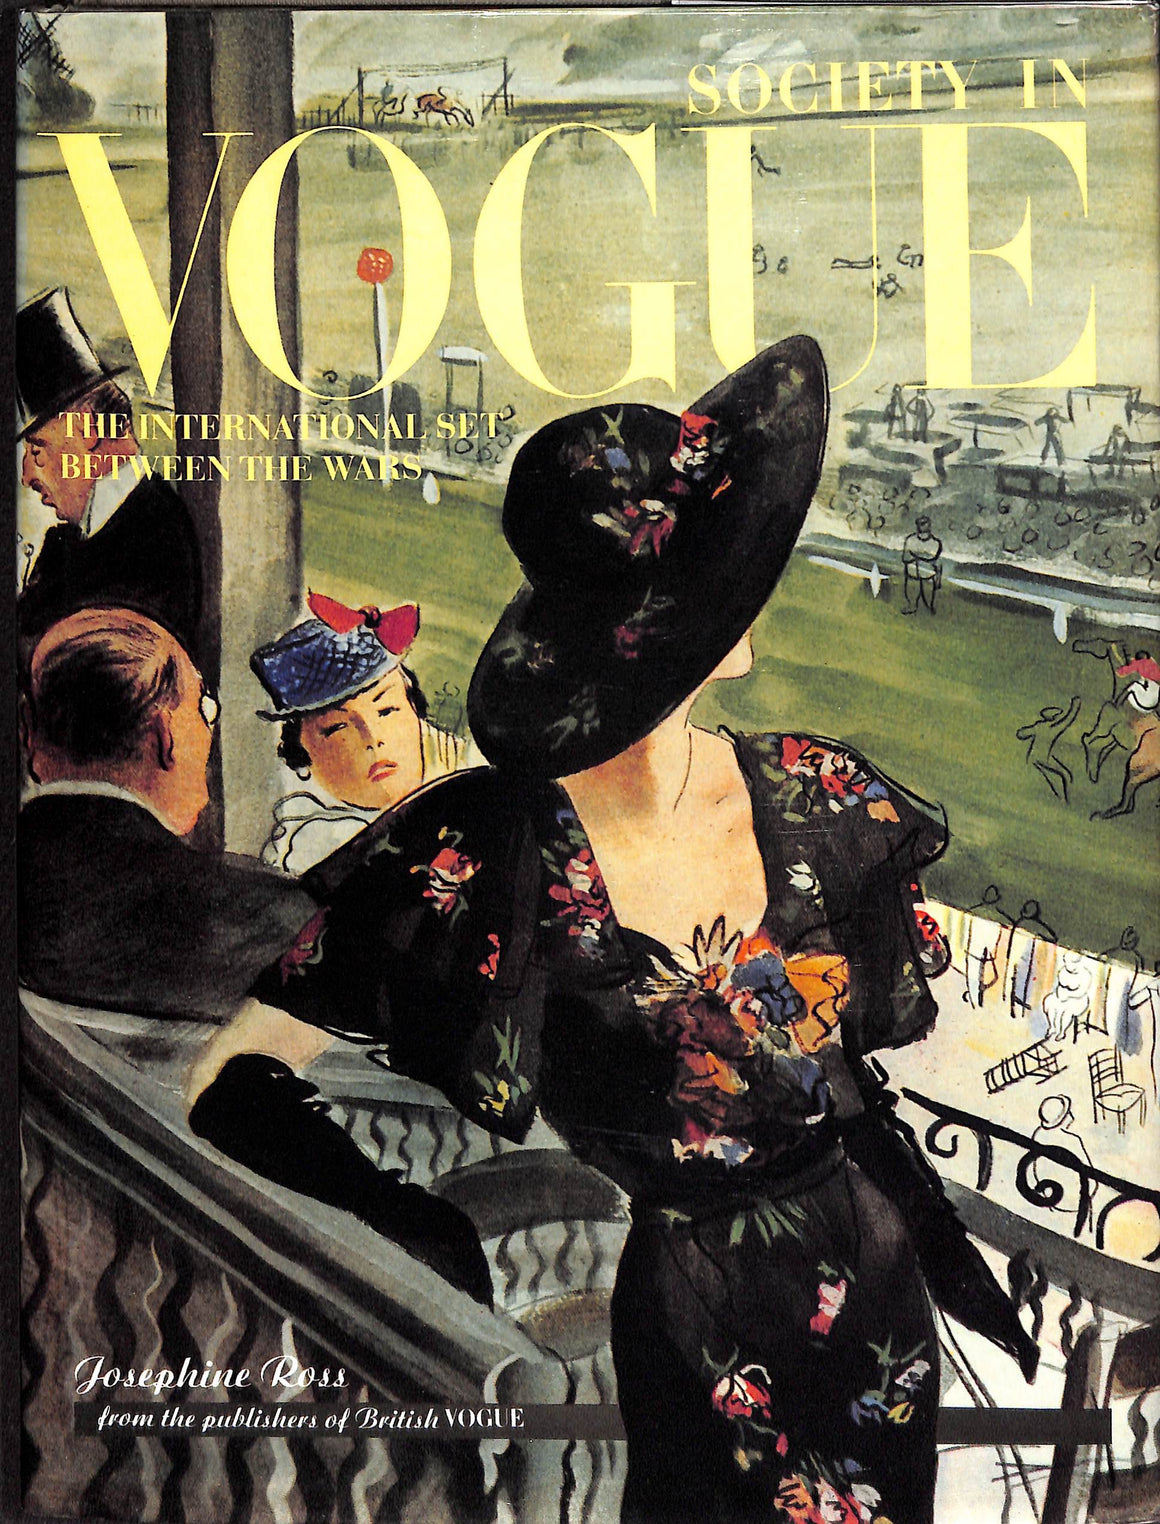 Society in Vogue: The International Set Between The Wars by Josephine Ross